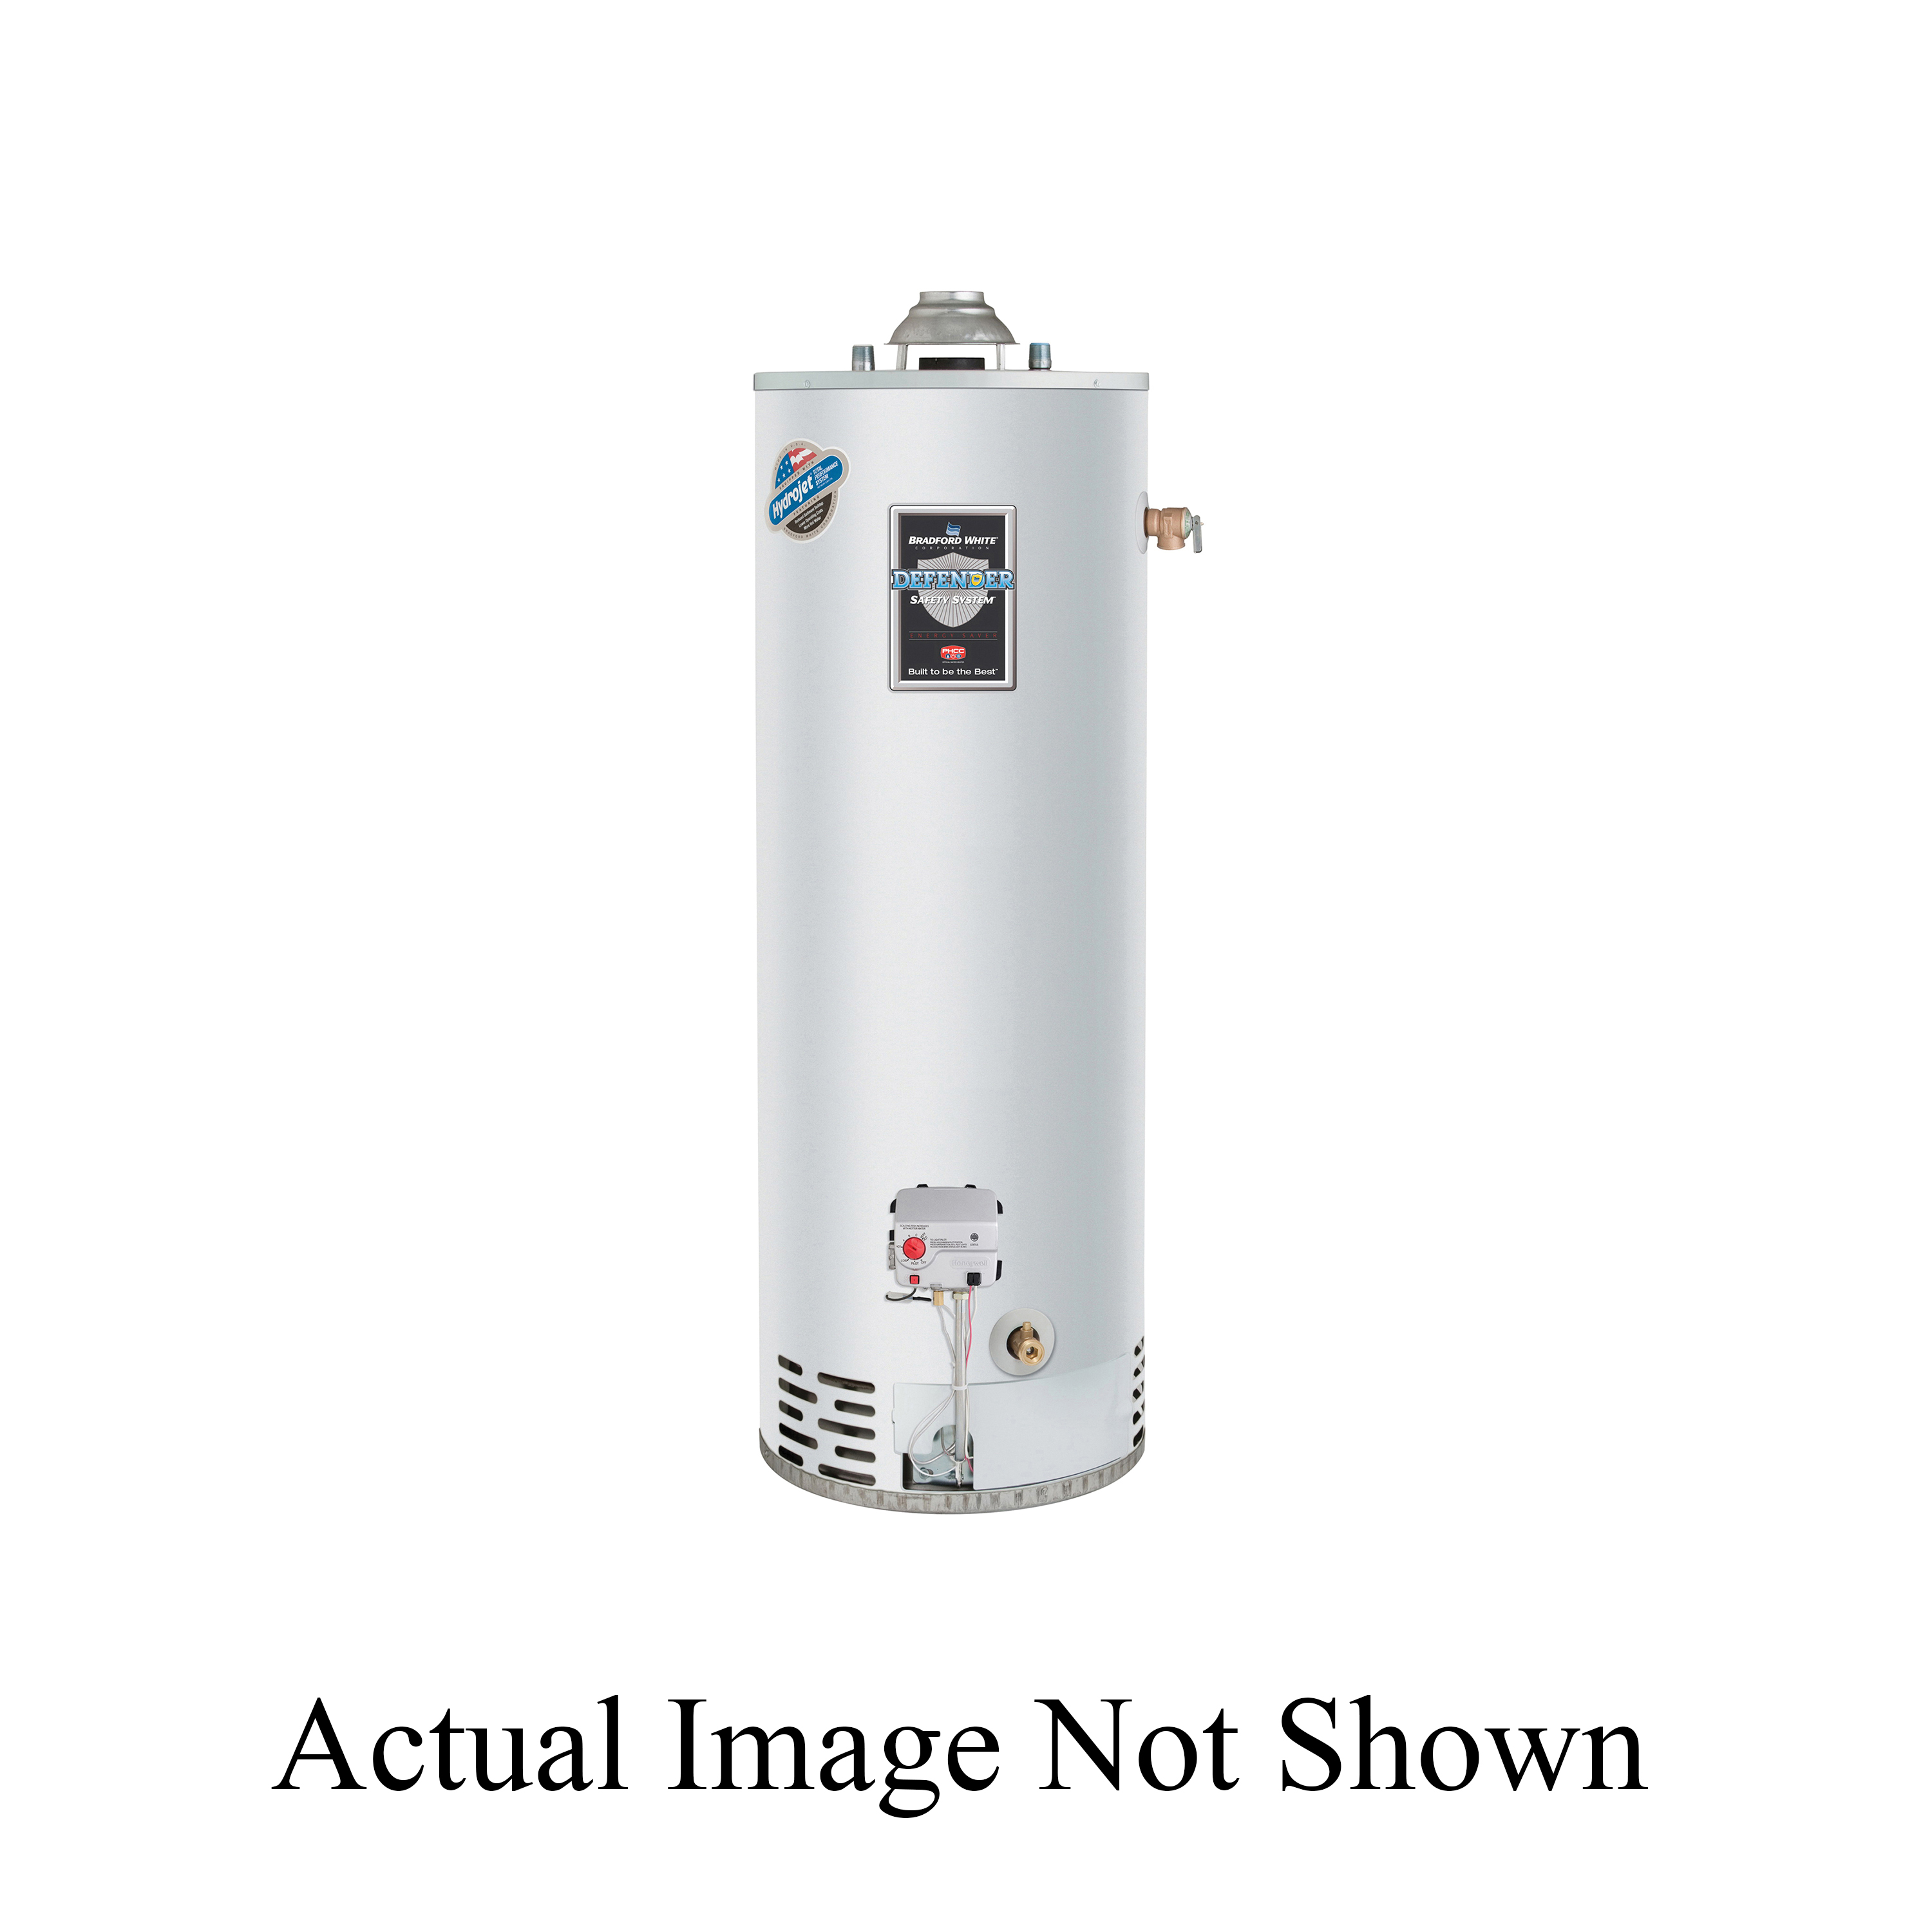 Bradford White Defender Safety System Gas Water Heater, 32000 Btu/hr Heating, Natural Gas, 1/2 in Gas Connection, 30 gal Tank